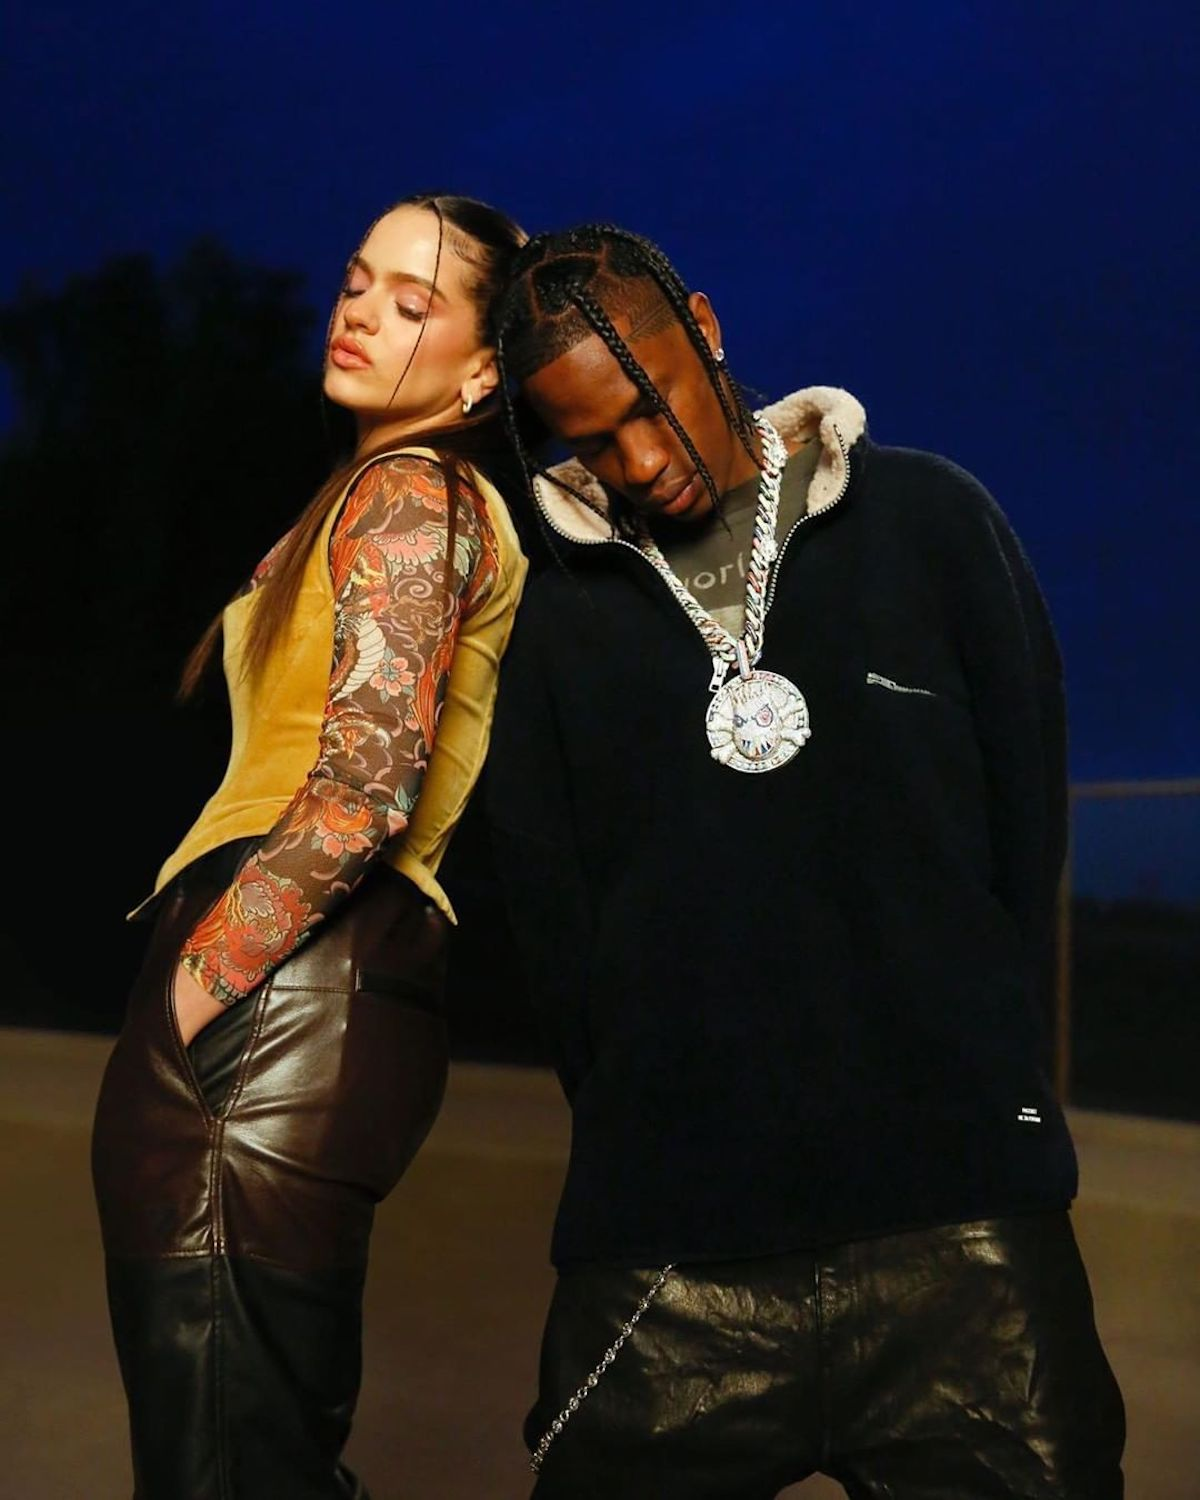 SPOTTED: Travis Scott Dons Cactus Jack & John Elliot for Rosalina Collab